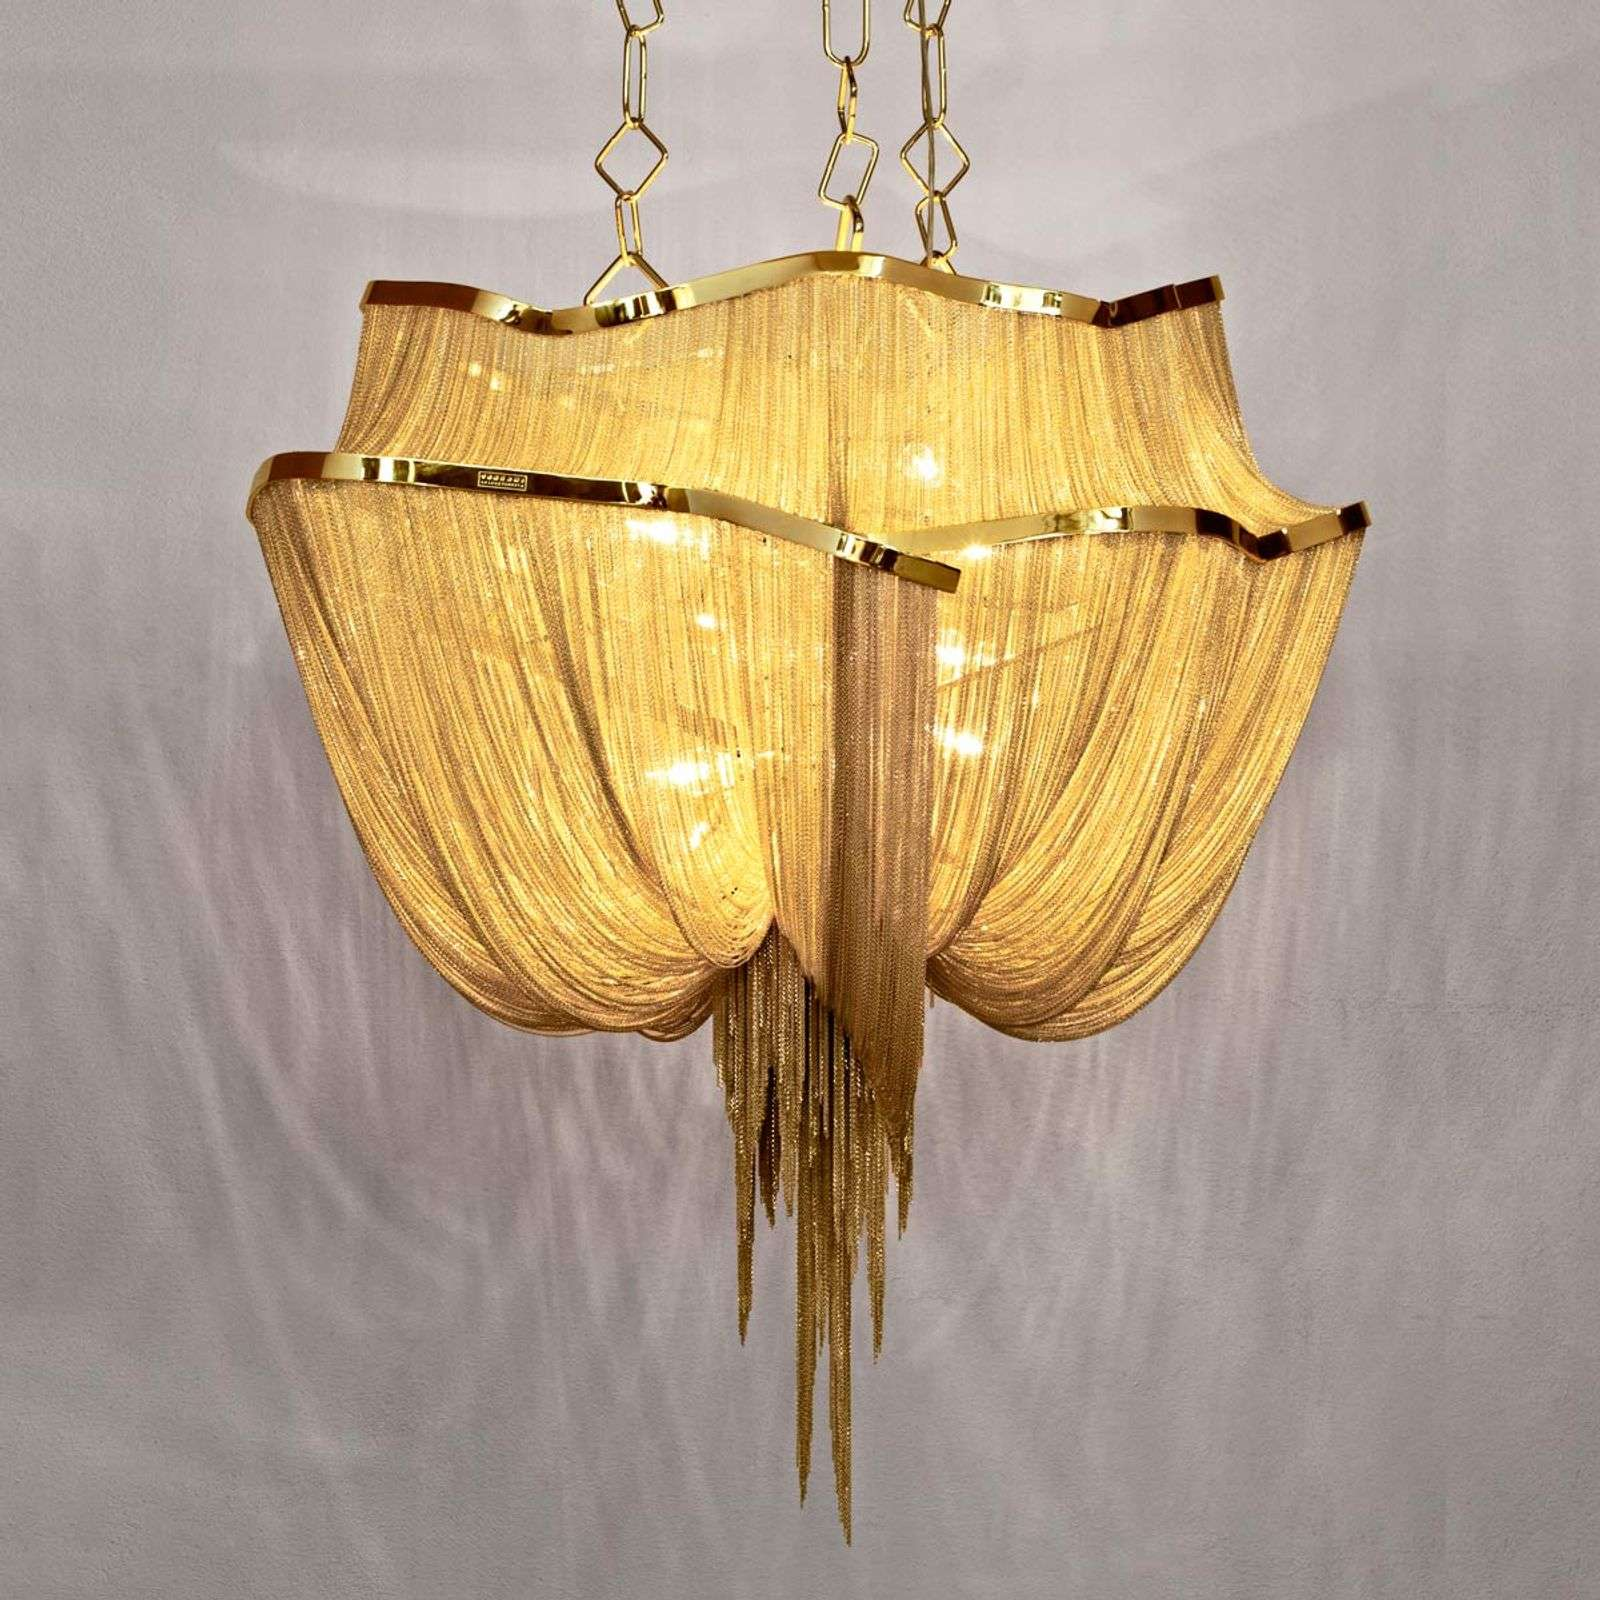 Suspension de designer dorée Atlantis 90 cm